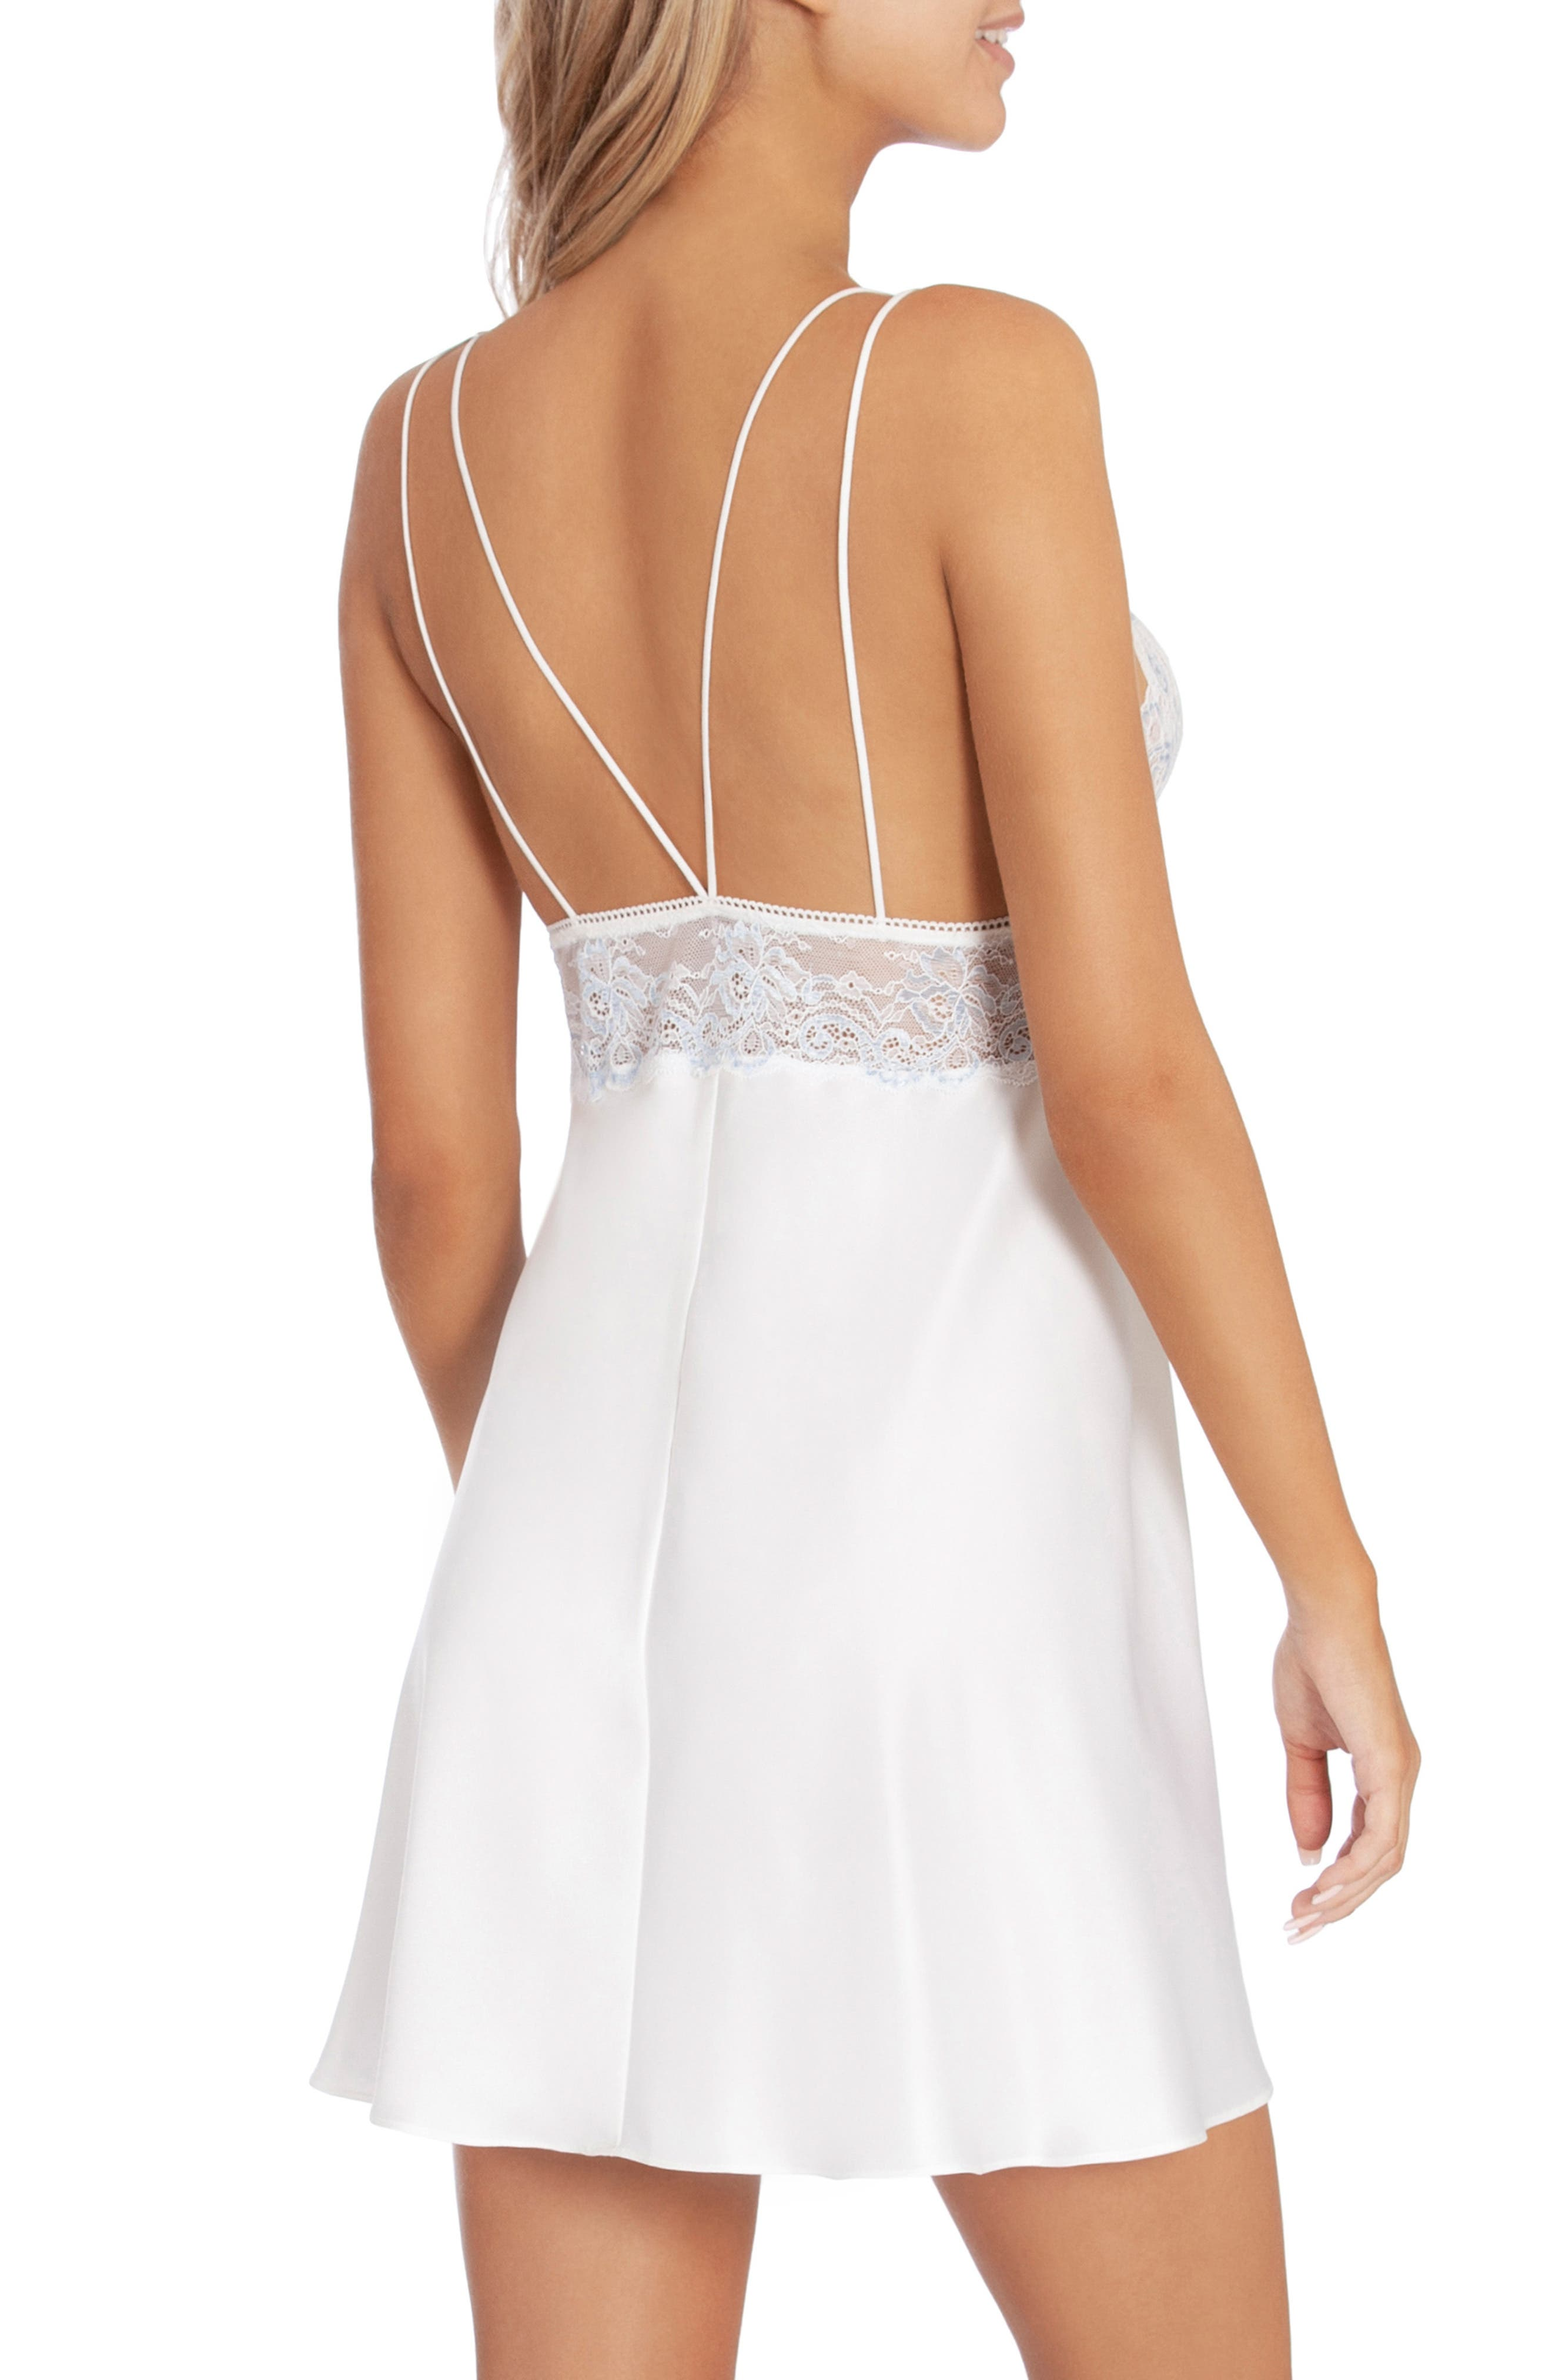 IN BLOOM BY JONQUIL,                             Lace & Satin Chemise,                             Alternate thumbnail 2, color,                             OFF-WHITE